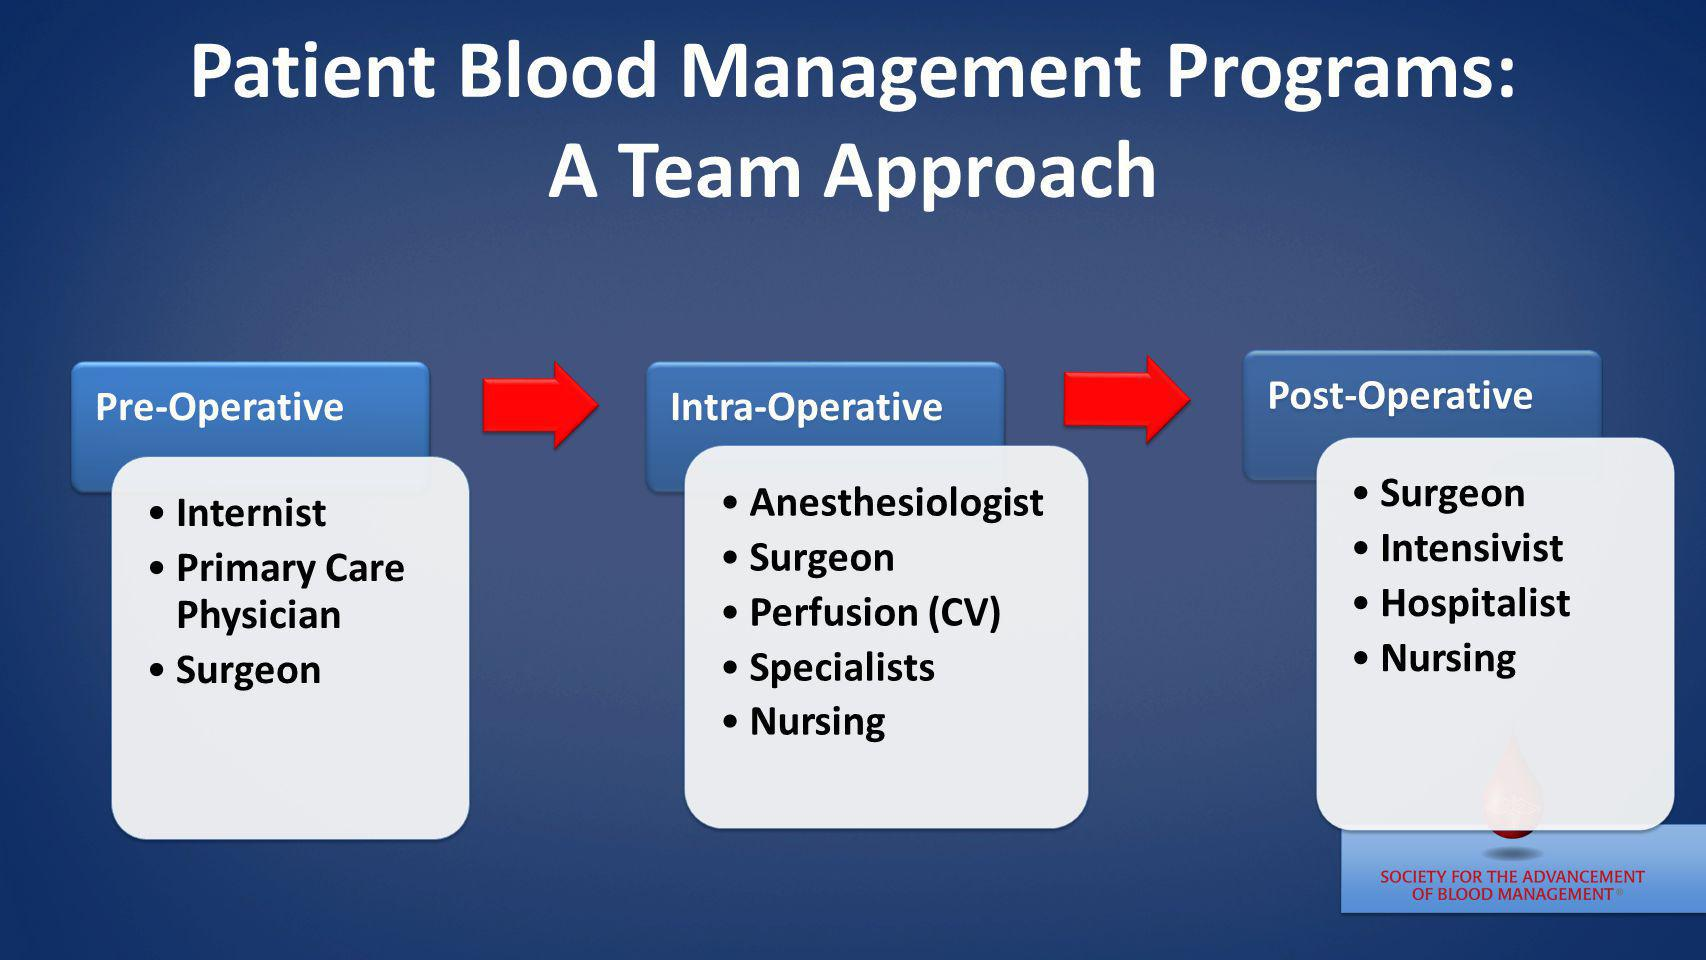 Patient Blood Management Programs: A Team Approach Pre-Operative Internist Primary Care Physician Surgeon Intra-Operative Anesthesiologist Surgeon Per